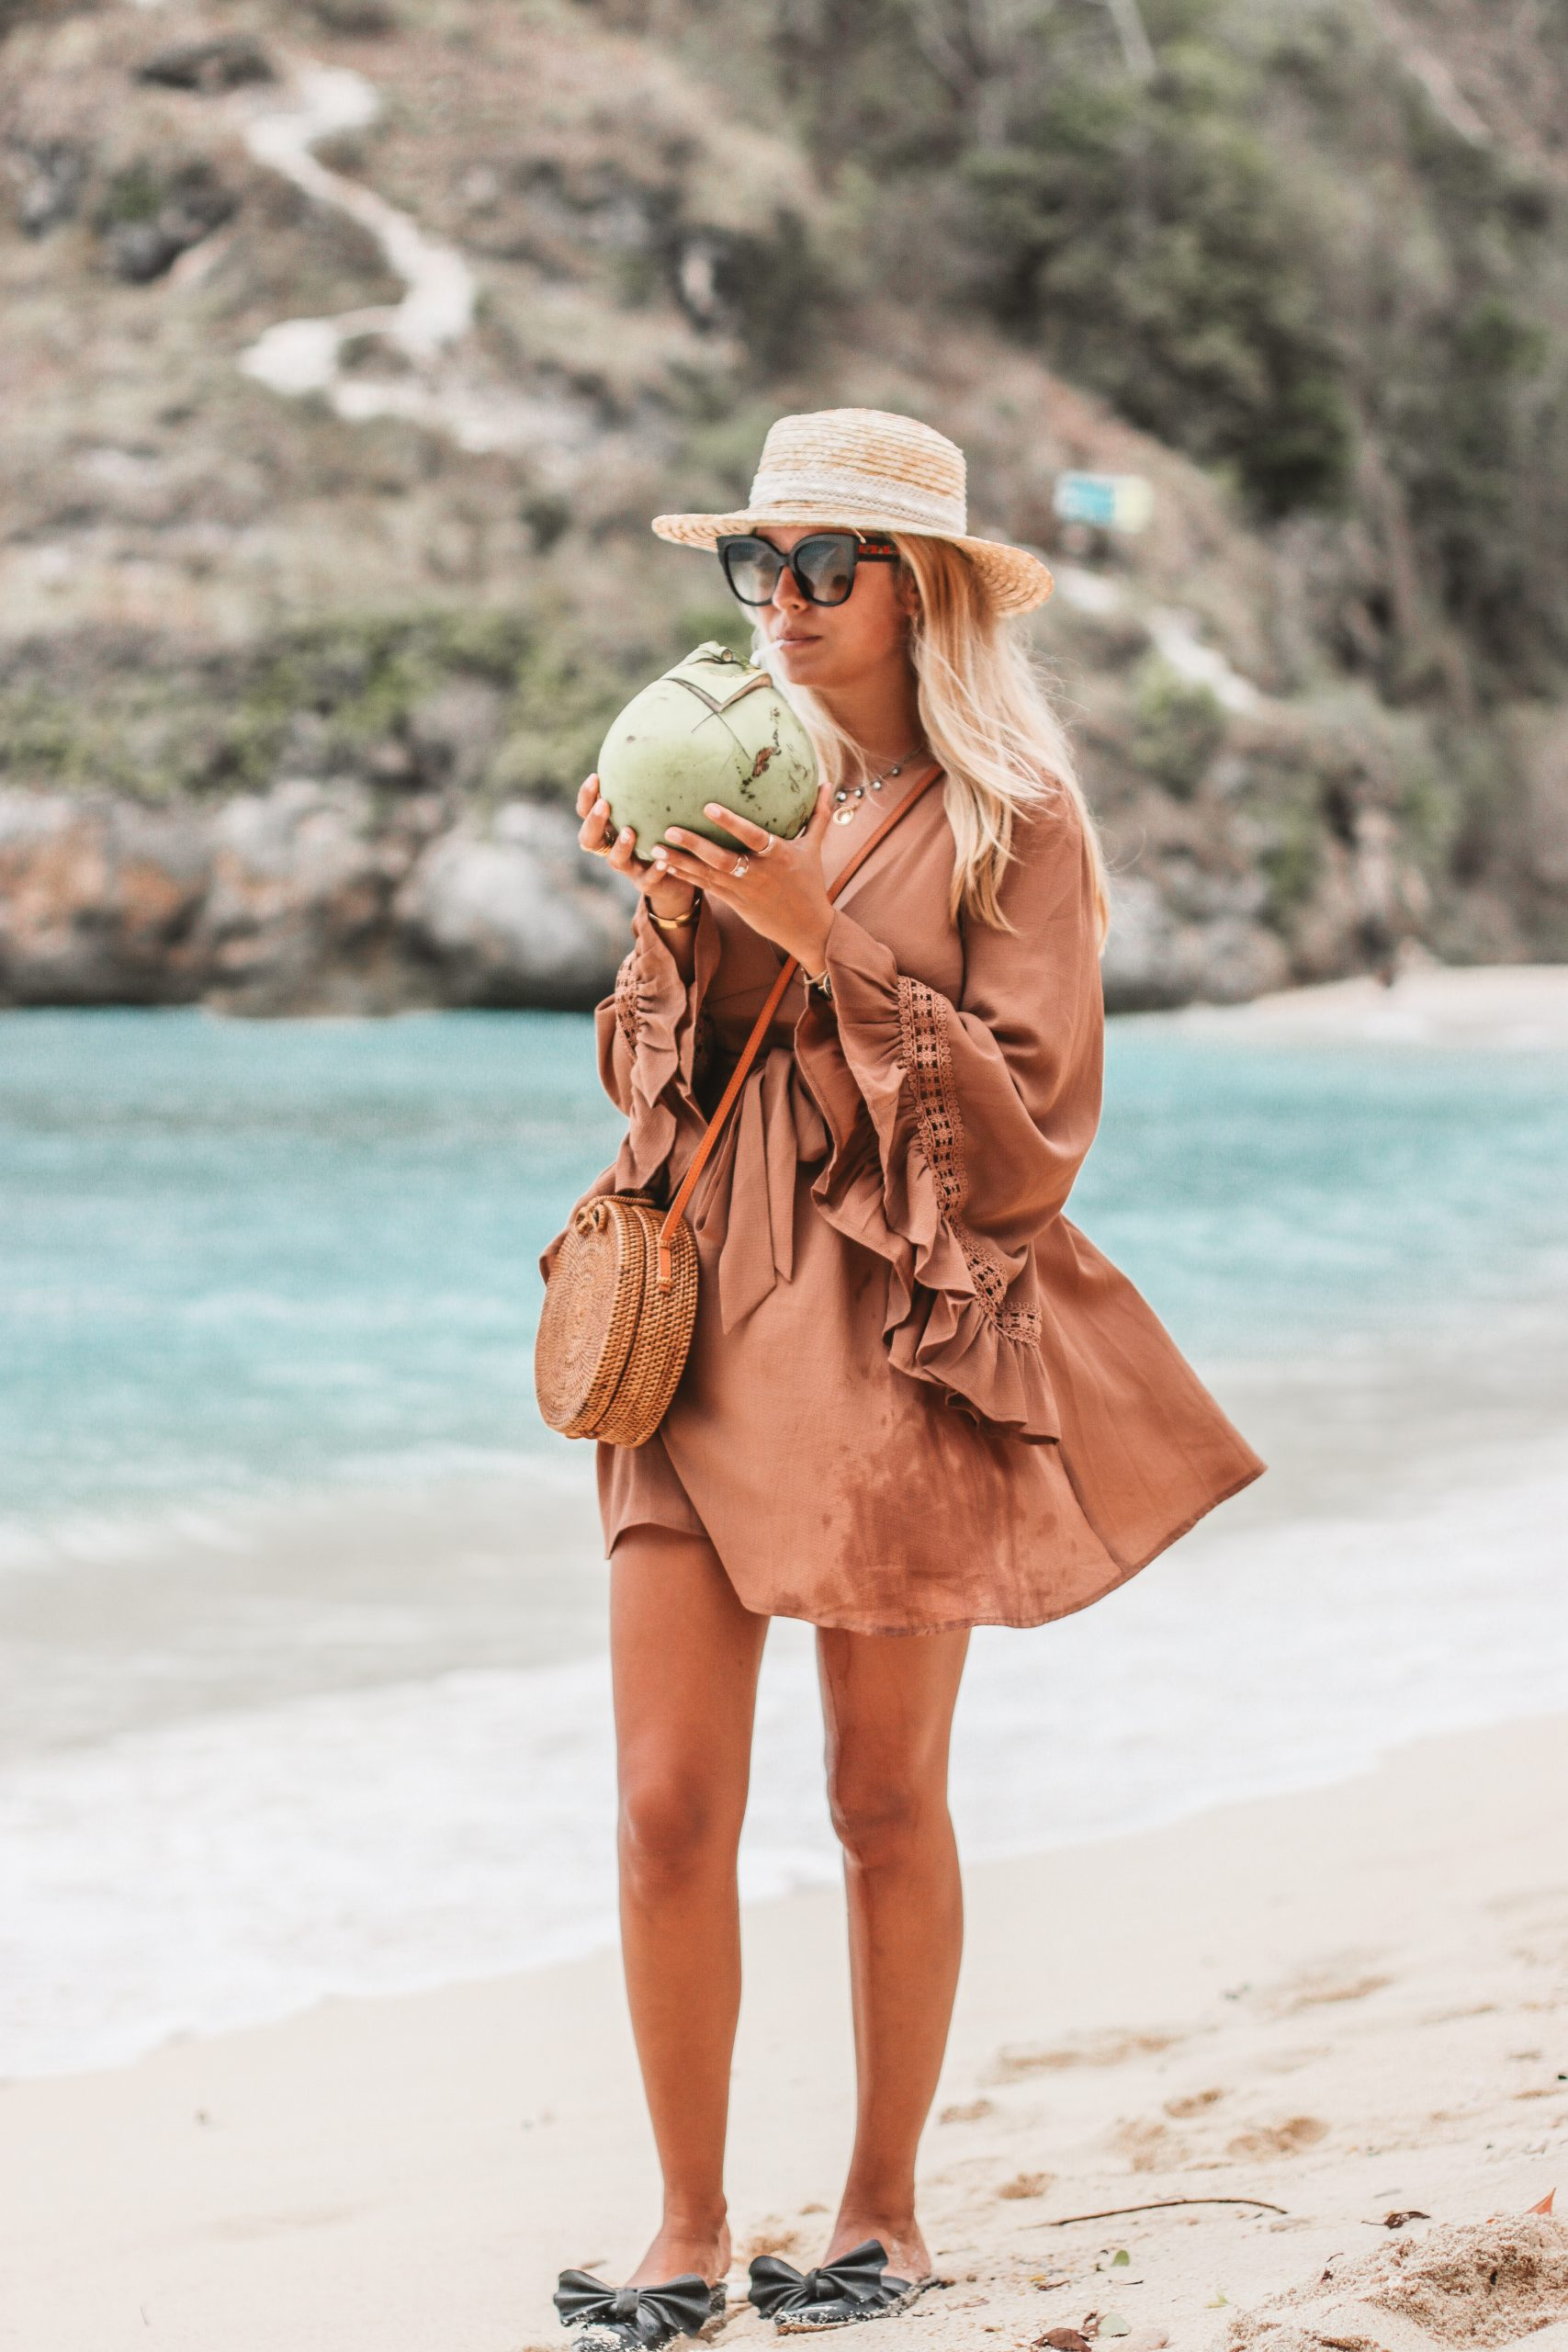 Beach outfit in Bali // Atuh Beach // Fashion blogger